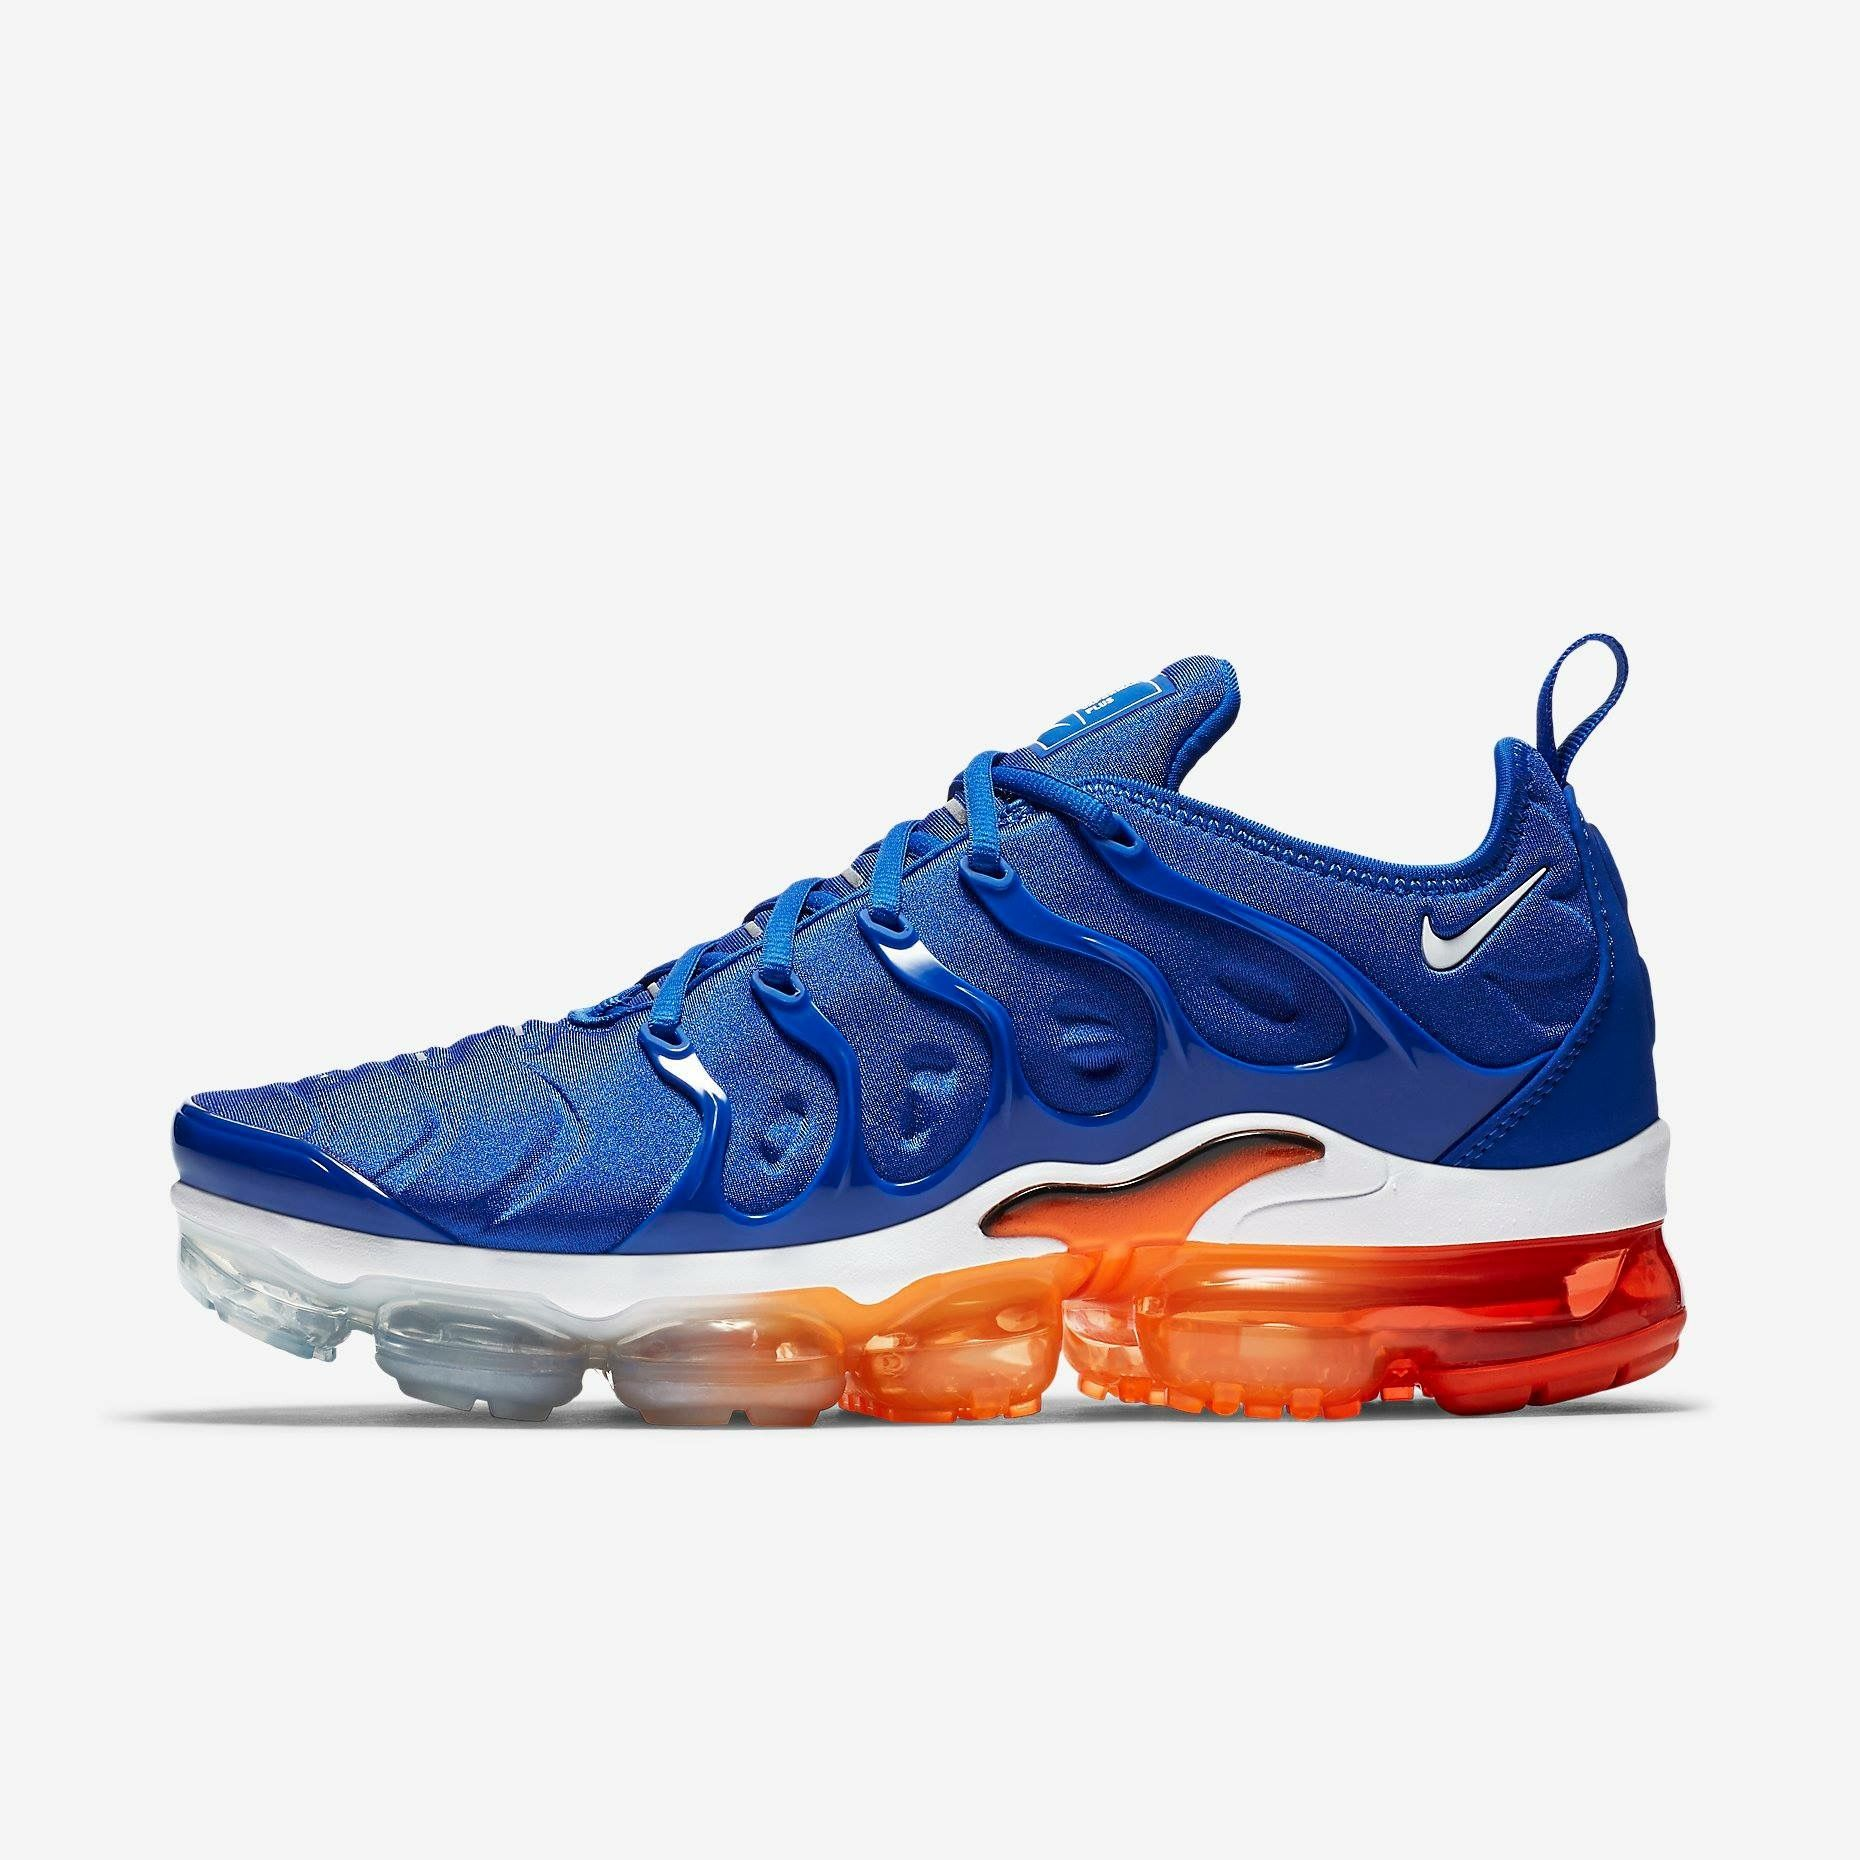 acae1fba5d8 Nike Air Vapormax Plus